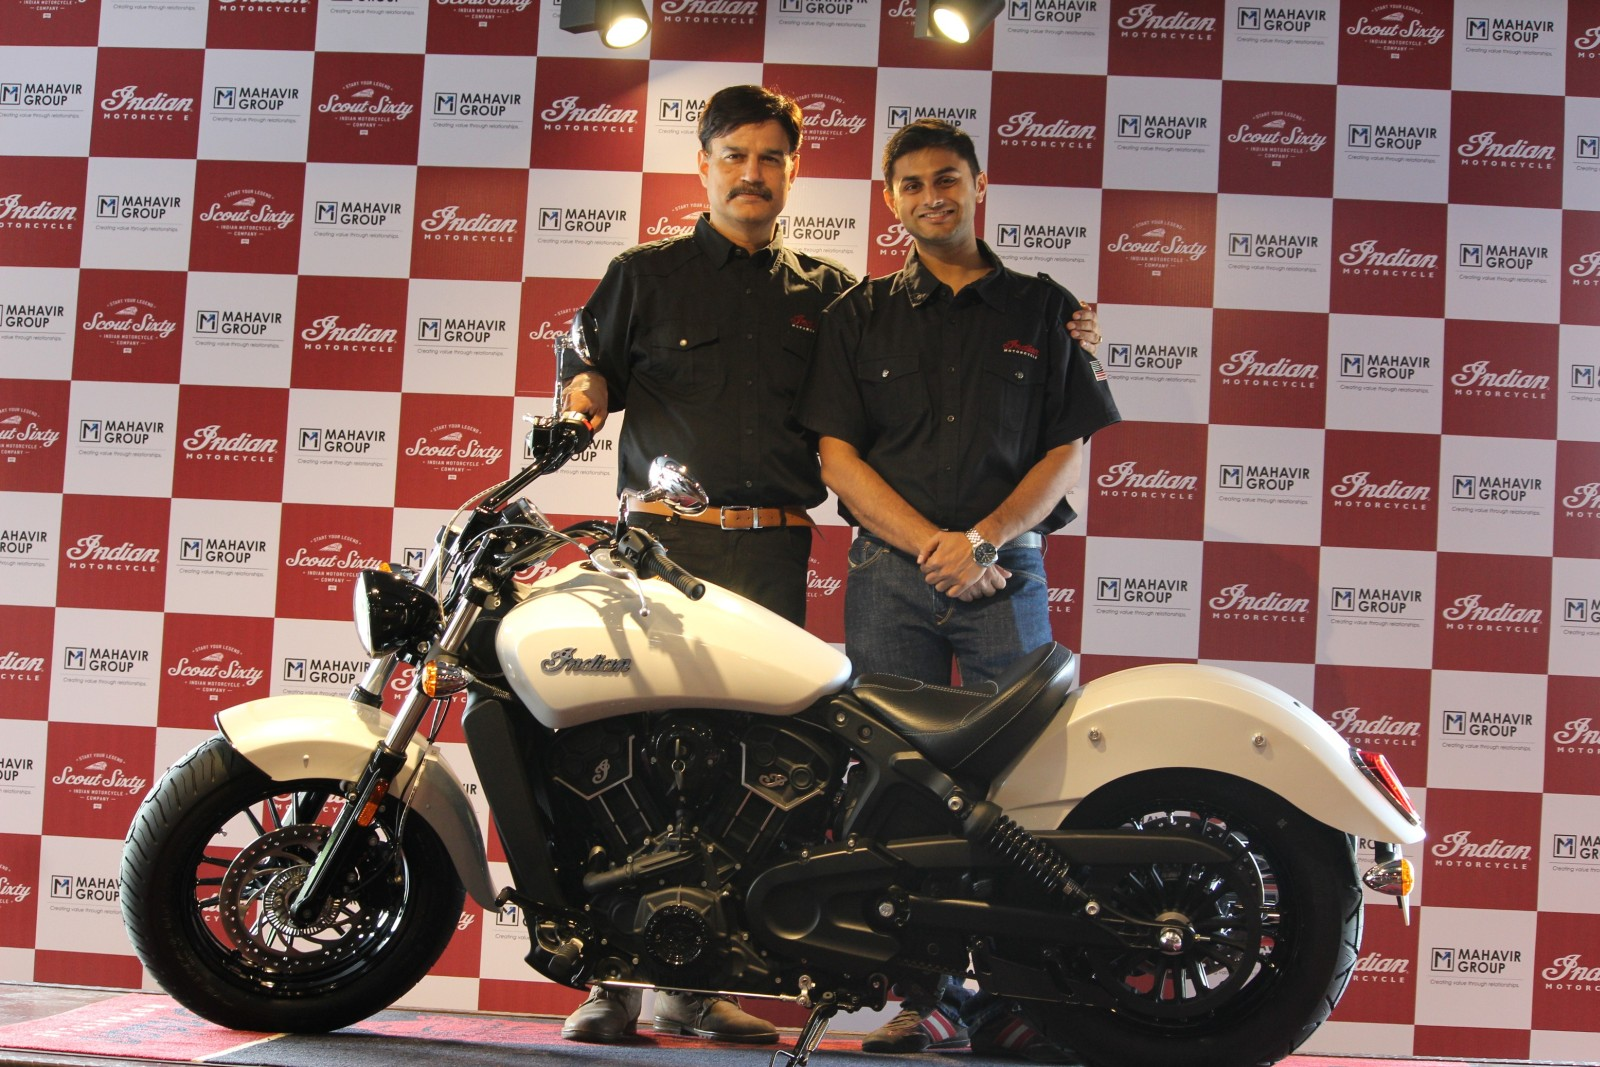 2016 Indian Scout Sixty from Indian Motorcycle launched in Hyderabad (2)